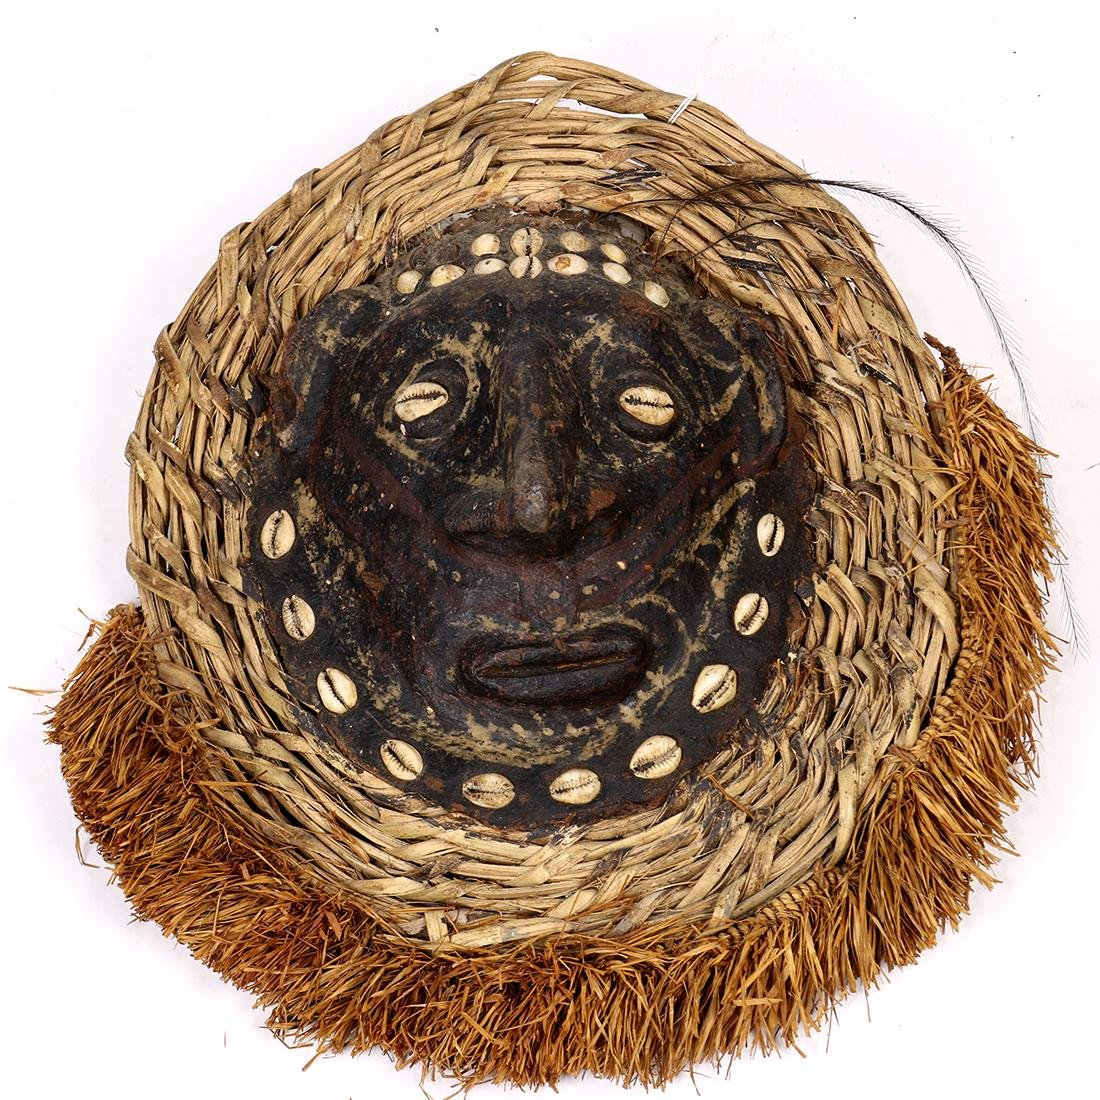 Papua New Guinea decorative mask